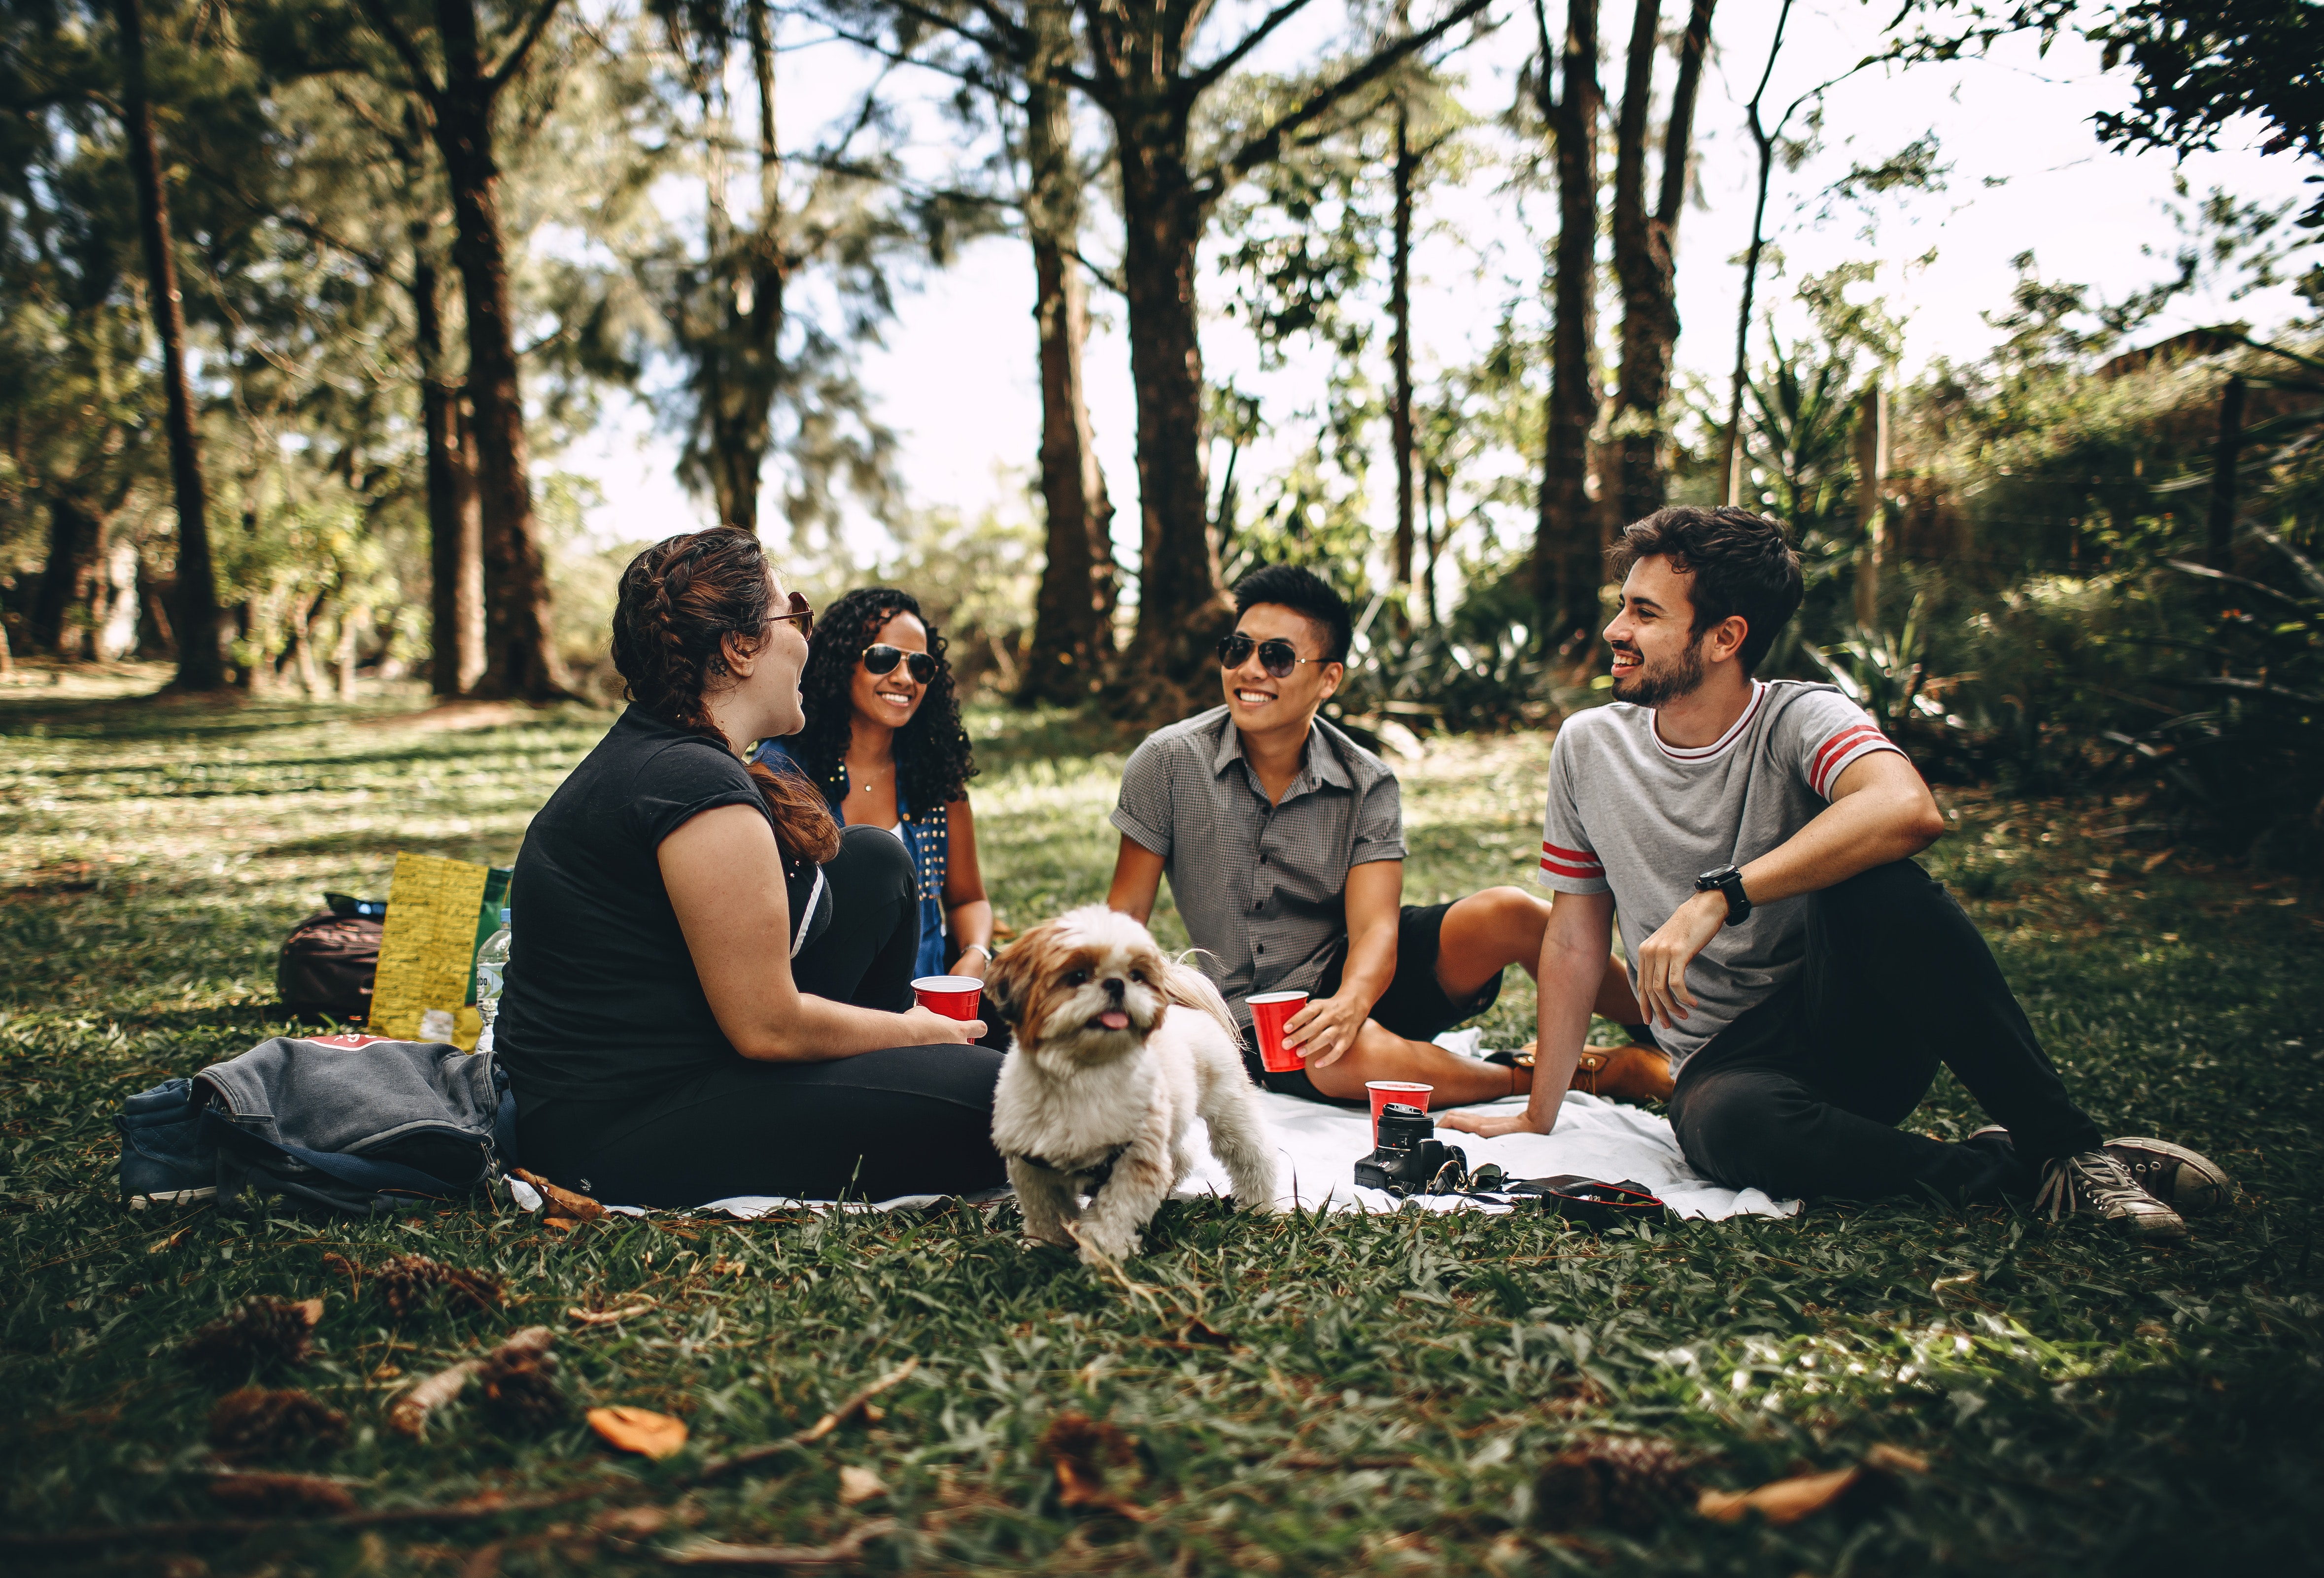 Friends chatting in a park with picnic